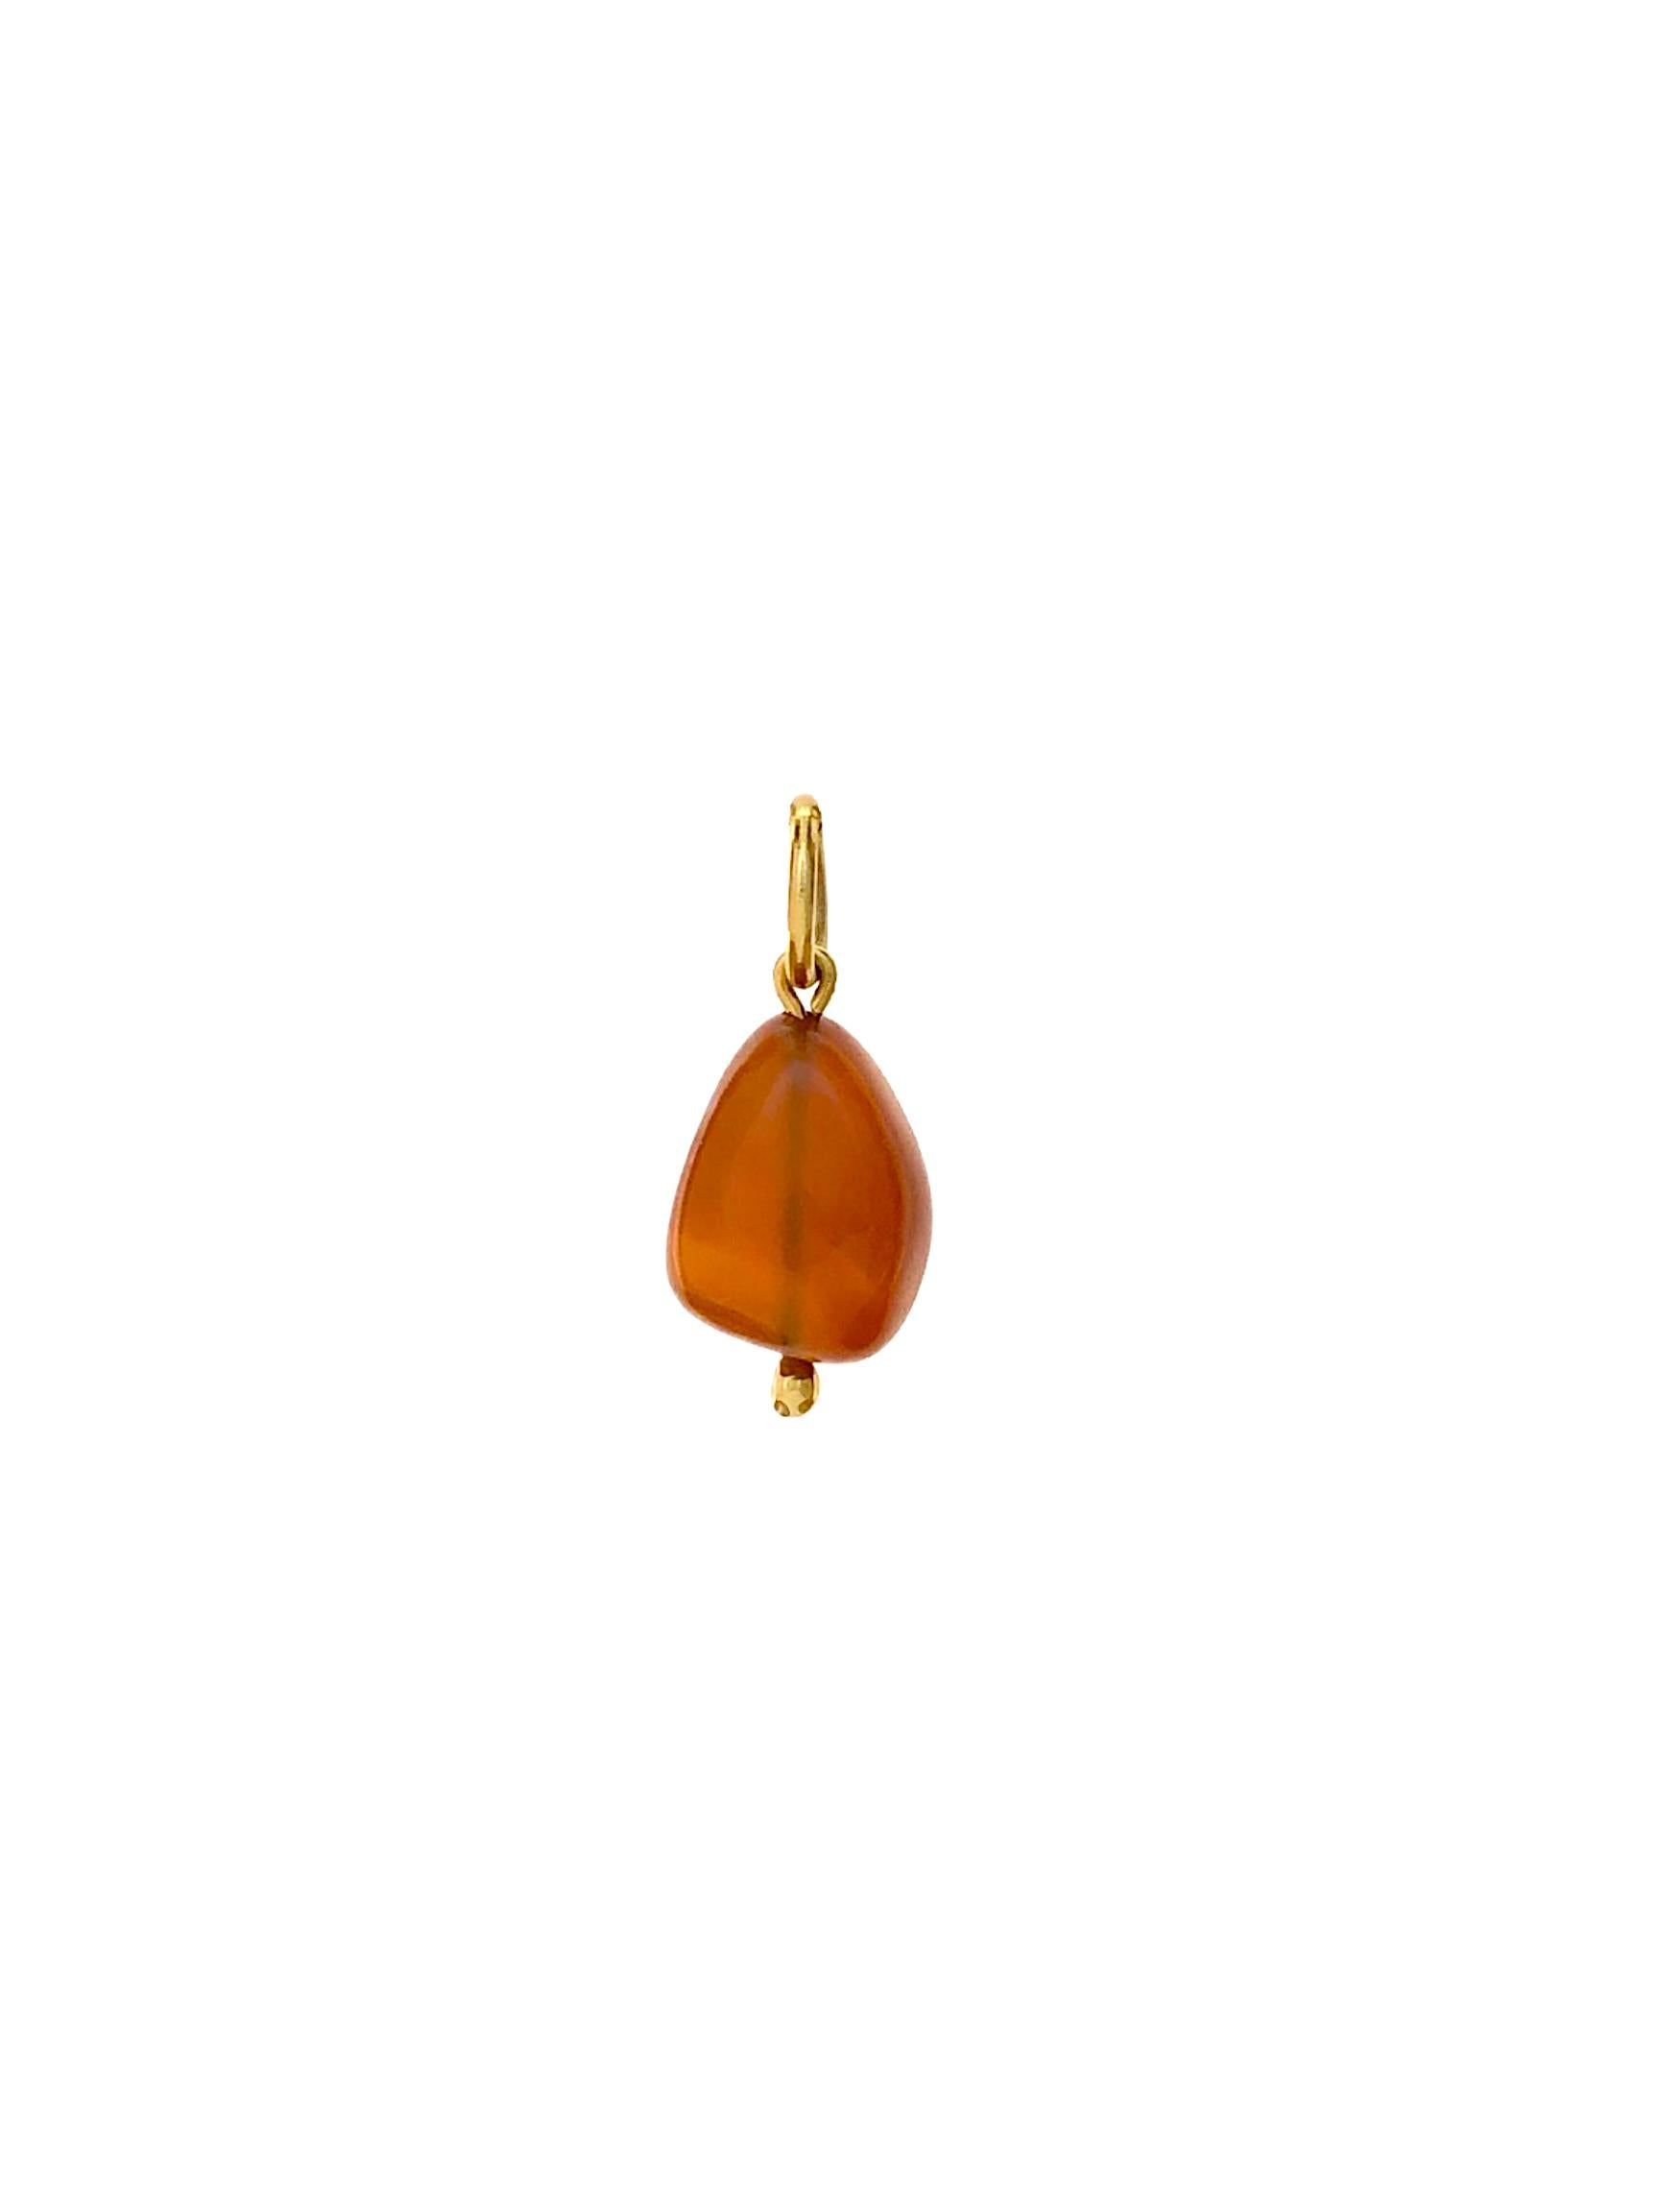 Carnelian Pebble Necklace Pendant Charm-Pendant Charms-JAREDJAMIN Jewelry Online-JAREDJAMIN - Fashion Jewelry & Accessories